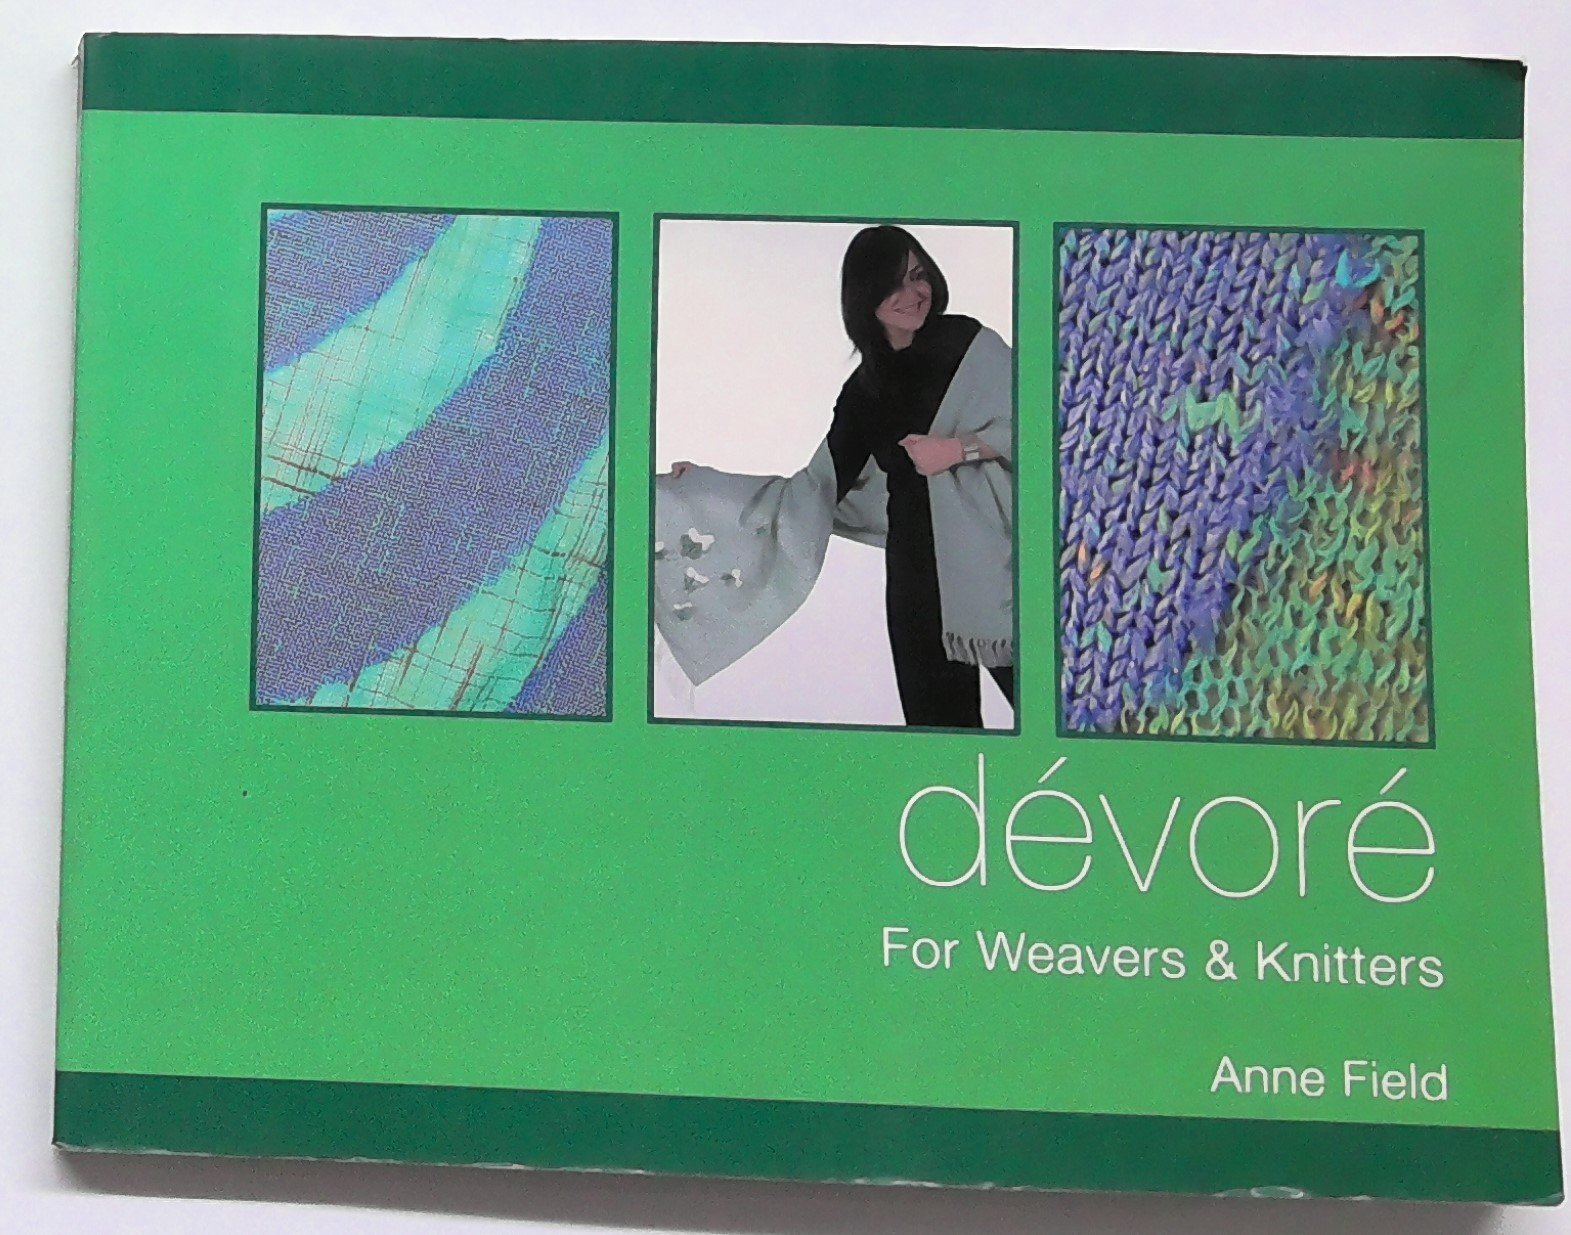 Devore for Weavers and Knitters